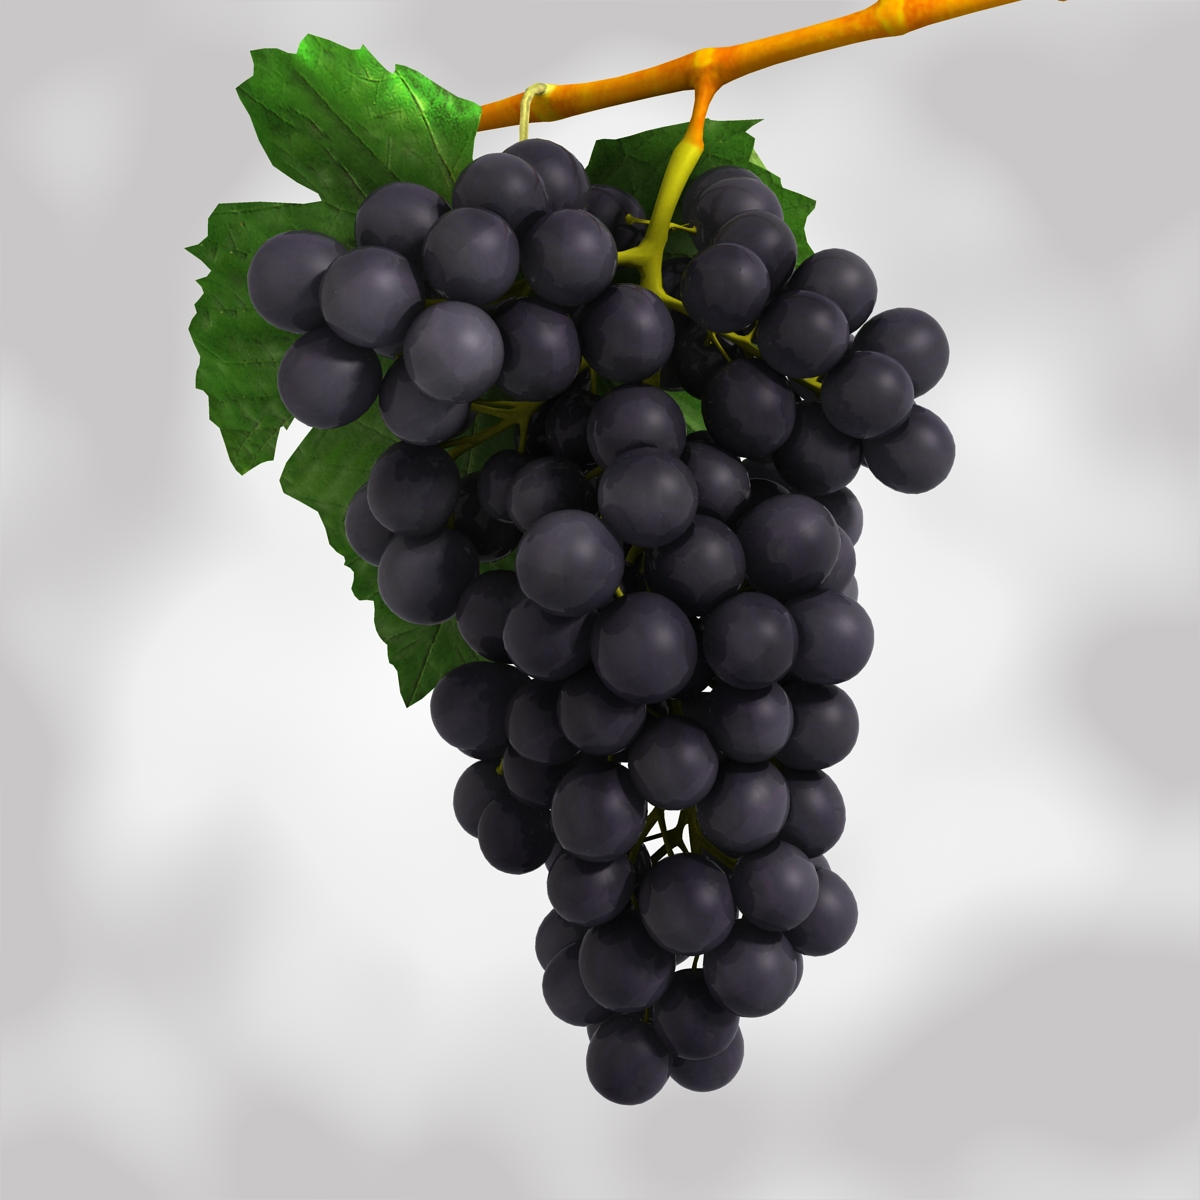 grapes black and blue 3d model 3ds max fbx c4d obj 204269